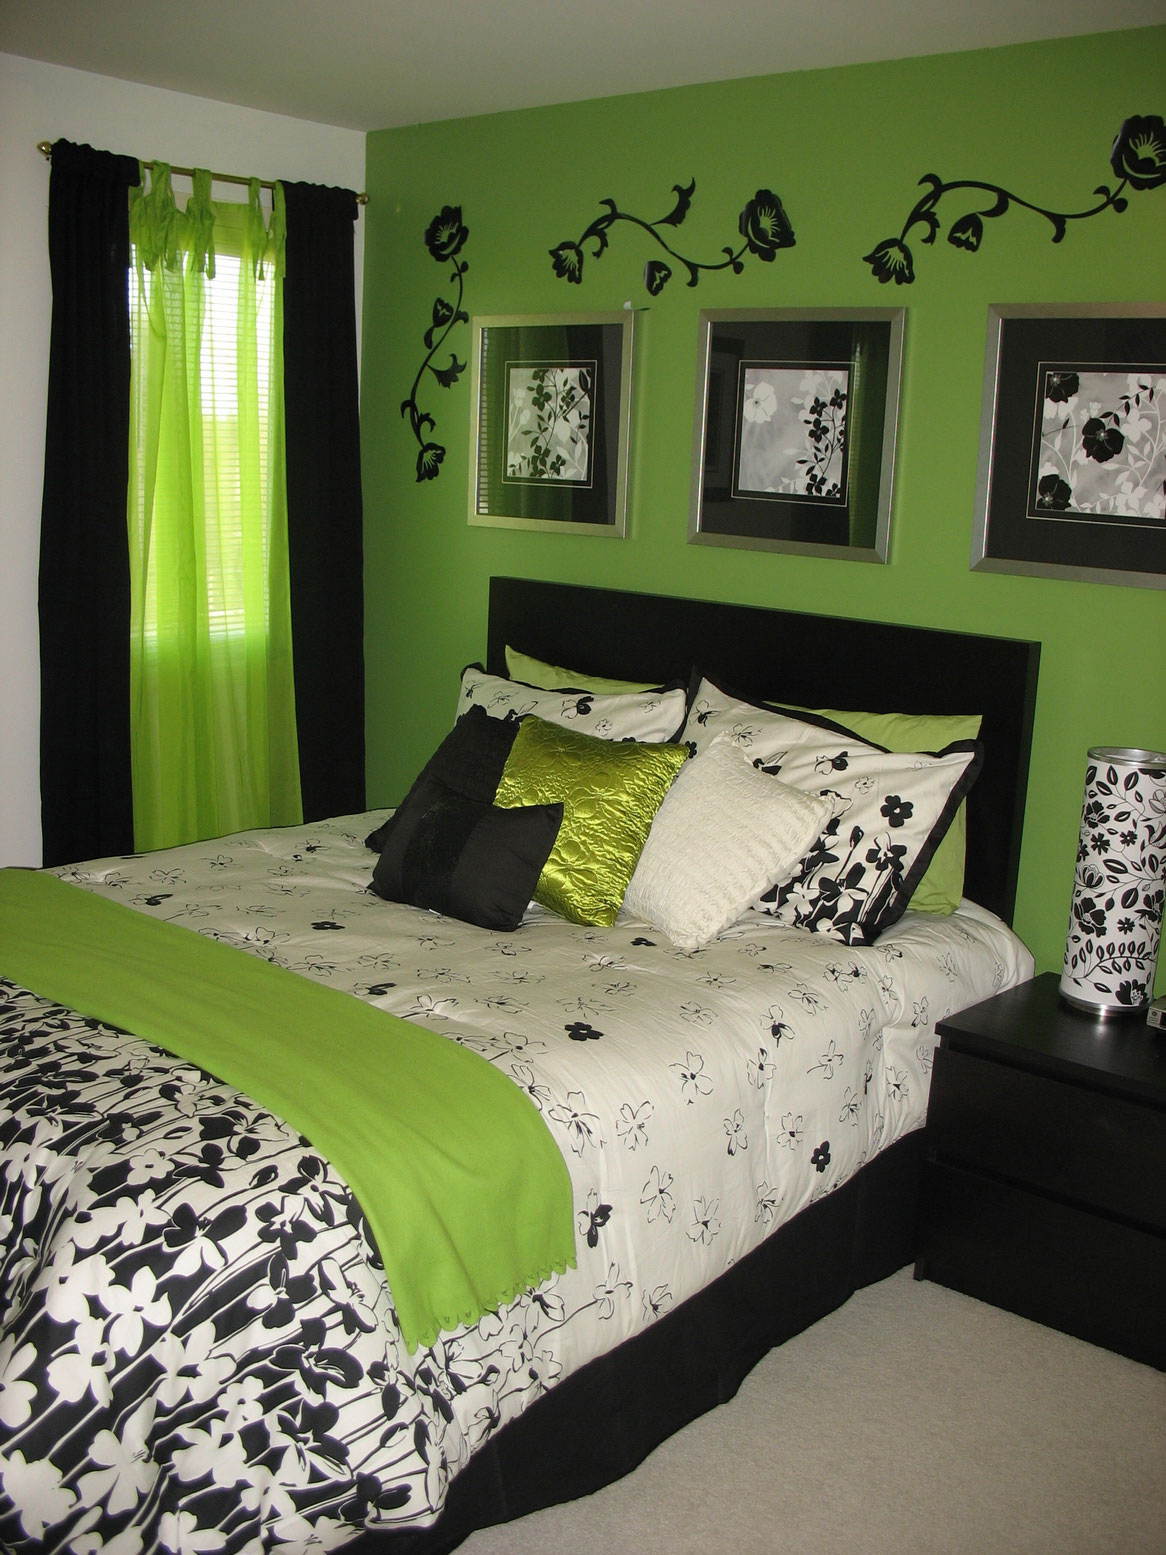 Bedroom Ideas for Young Adults - HomesFeed on Room Decore  id=75660